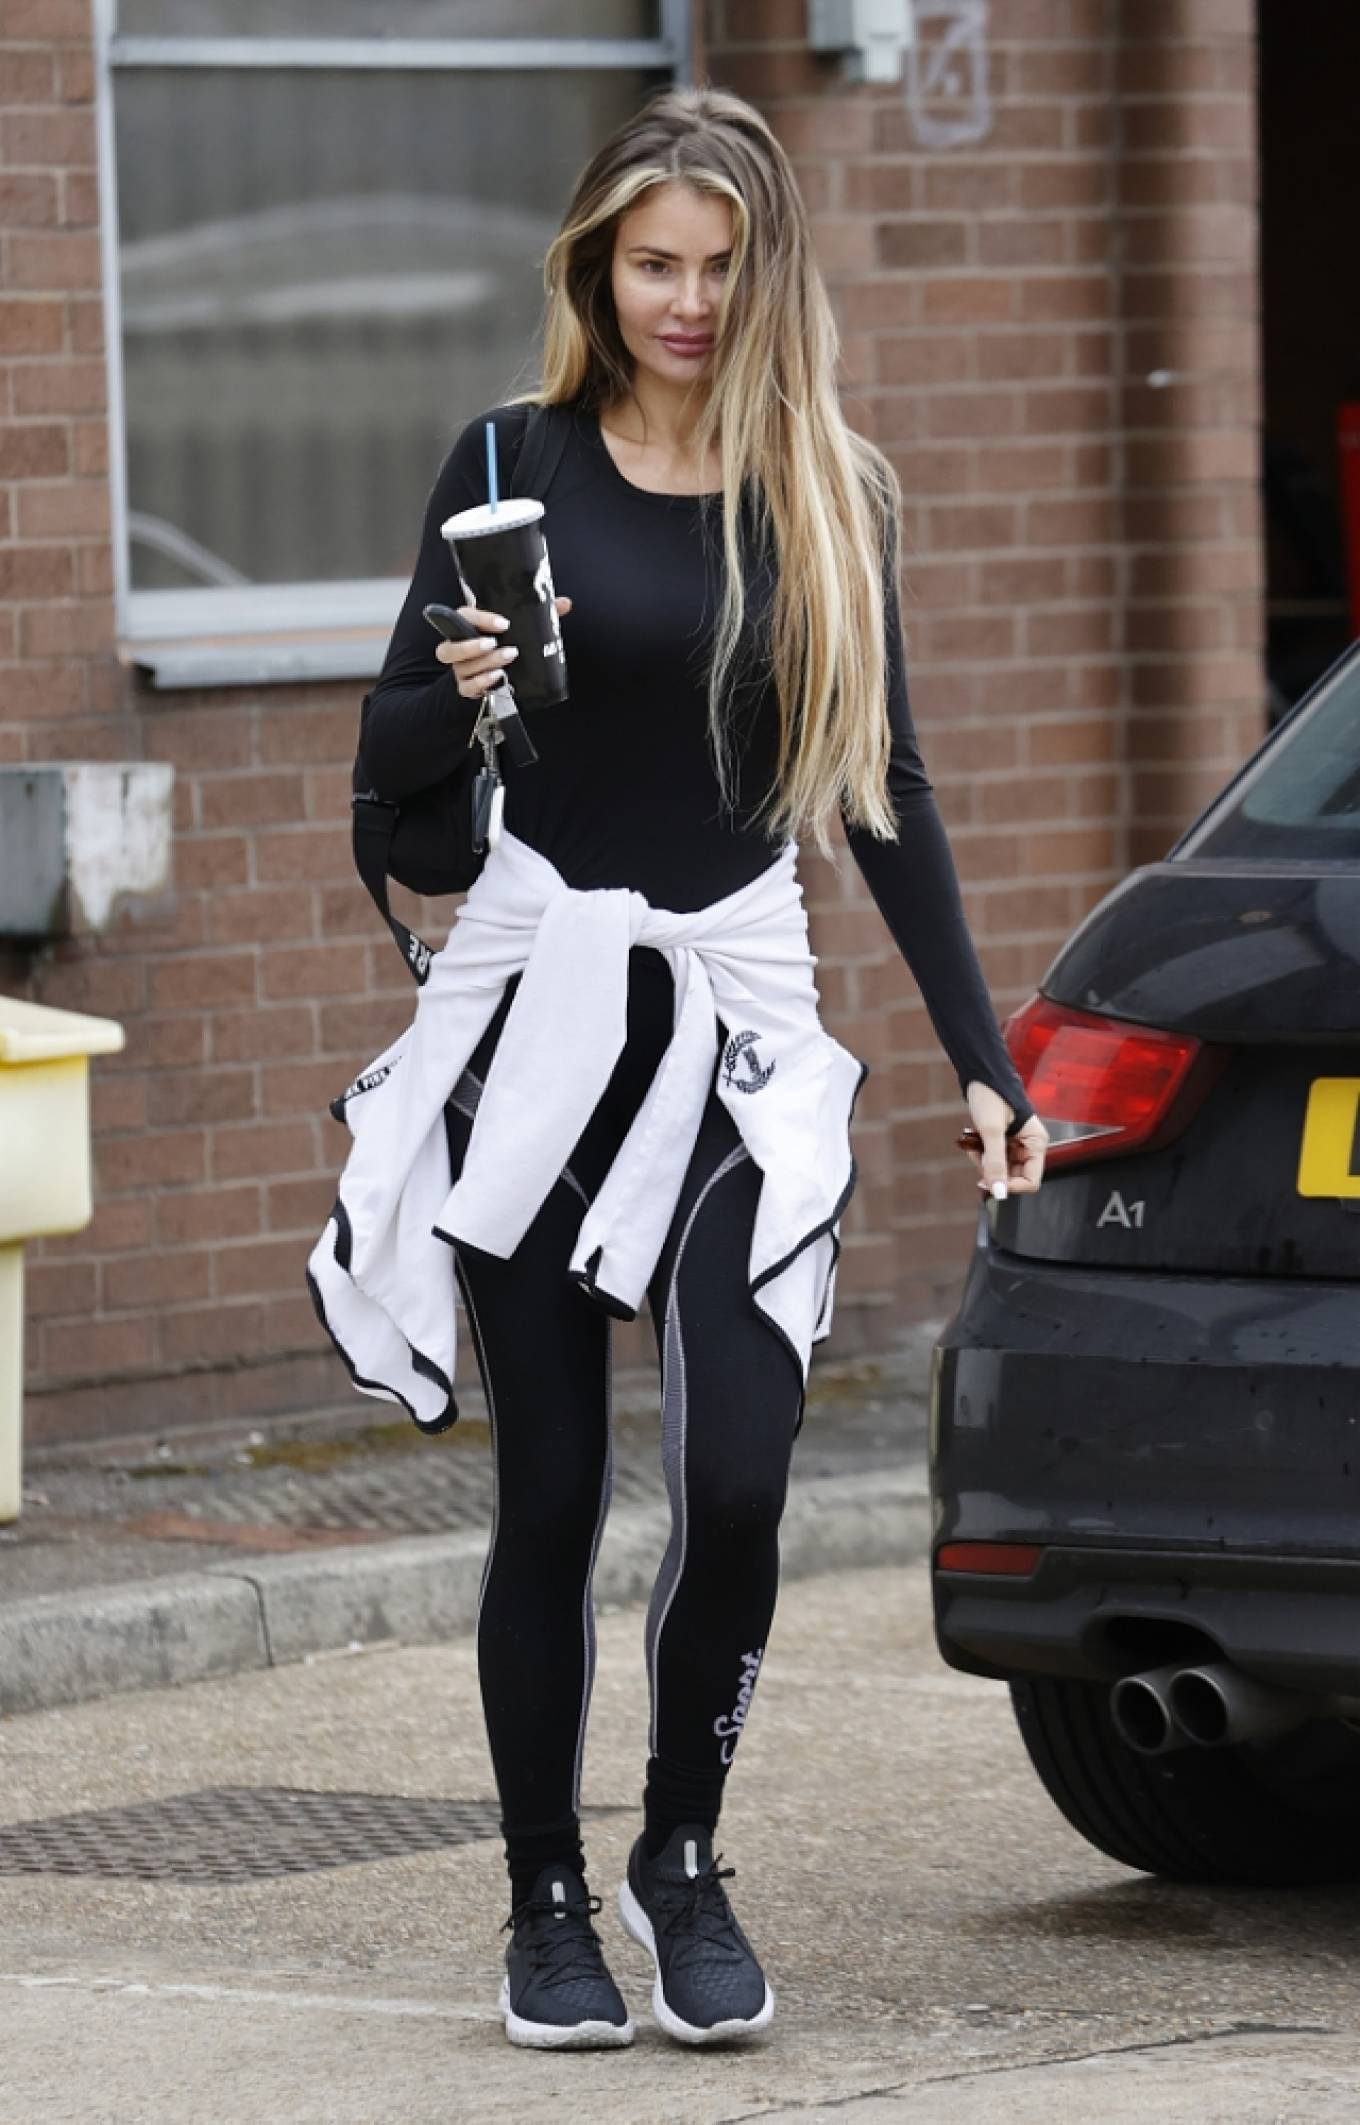 Chloe Sims 2021 : Chloe Sims – Seen make up free after a workout in Essex-11